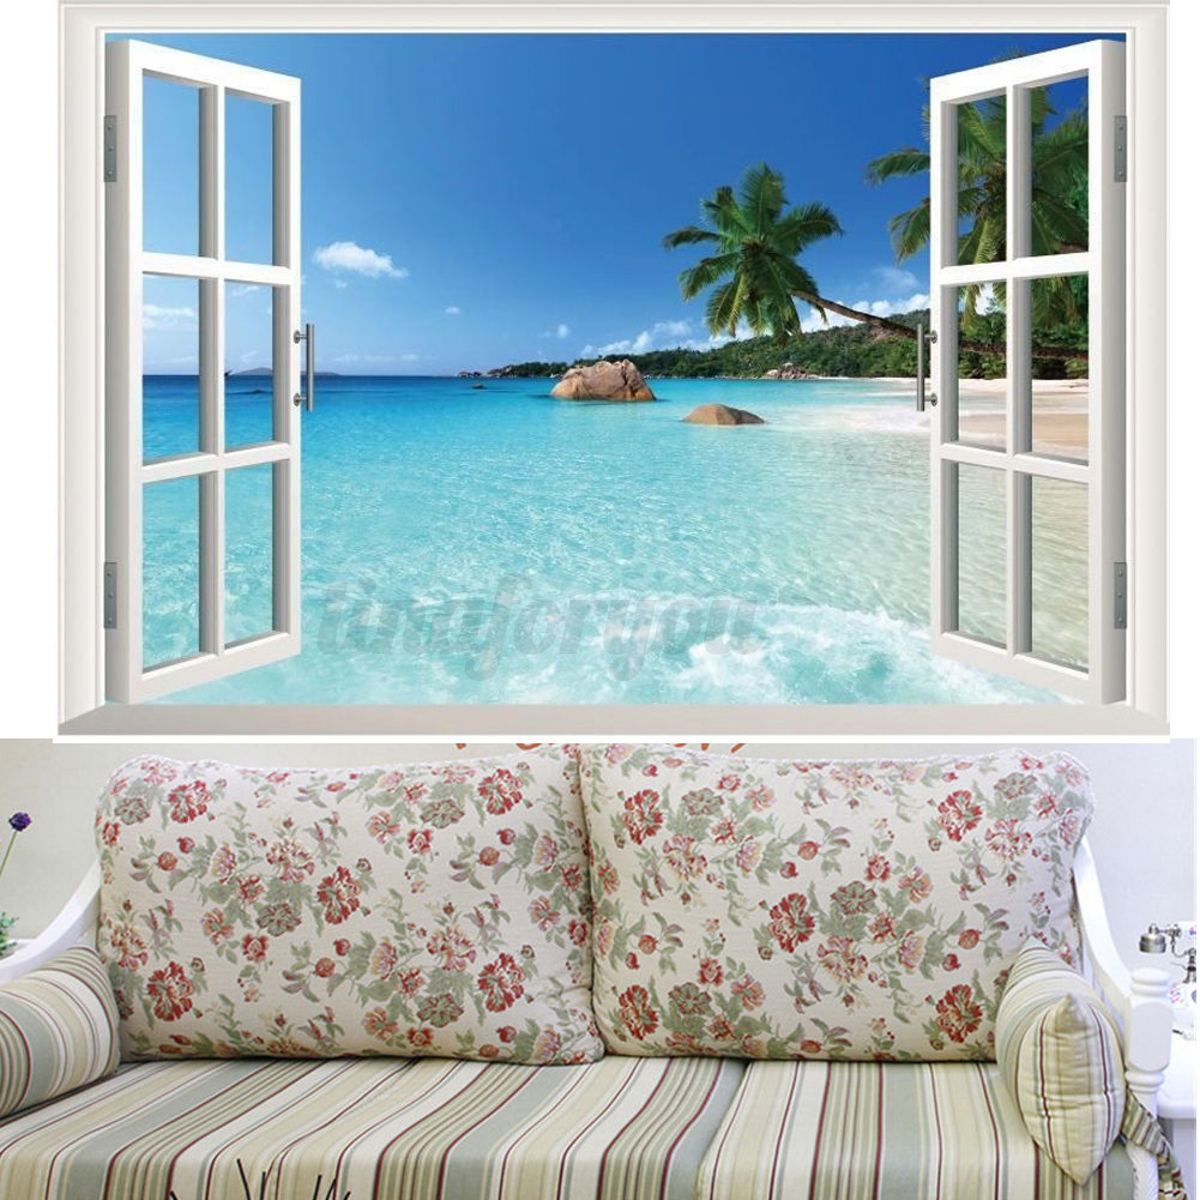 Delicieux Beach Window View Scenery 3D Wall Stickers Vinyl